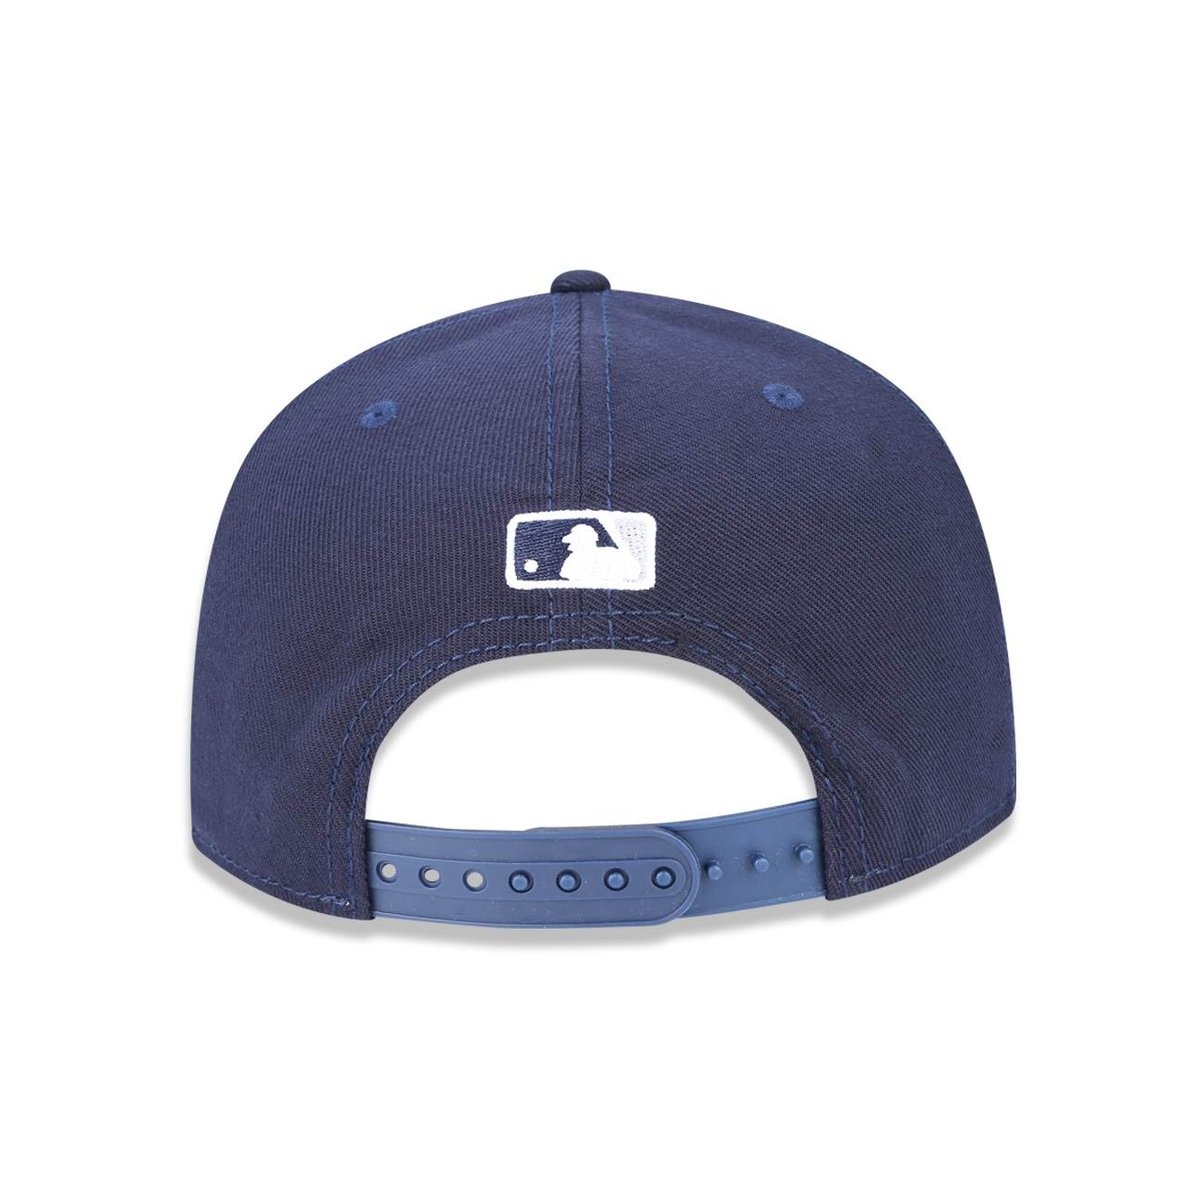 ... Boné 950 Original Fit New York Yankees MLB Aba Reta Snapback New Era ... dbc4947ad7b